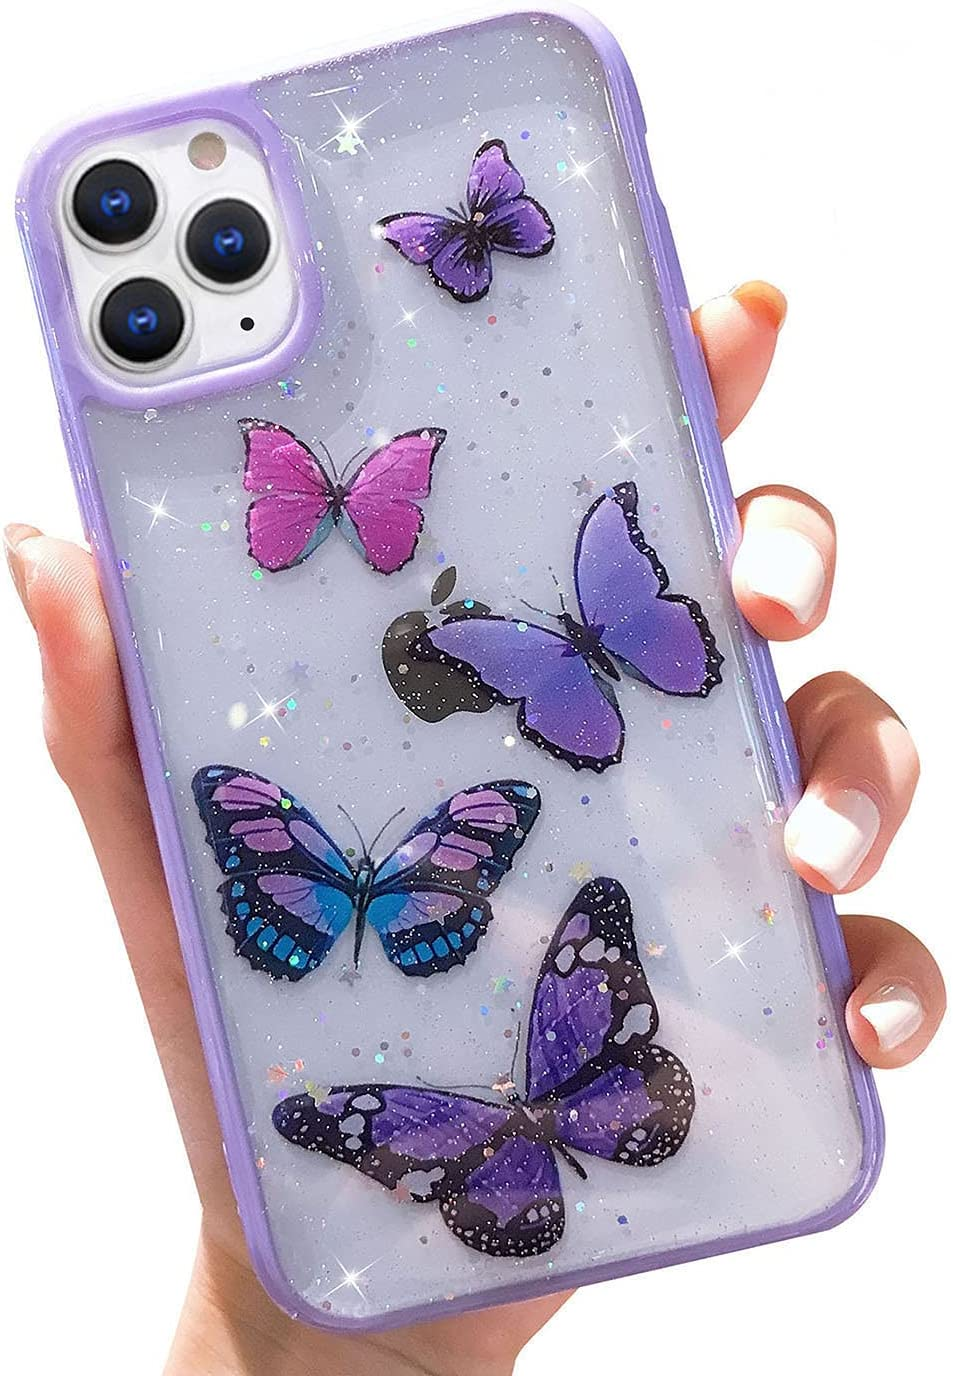 Butterfly Bling Clear Case Compatible with iPhone 11 Pro Max, wzjgzdly Glitter Case for Women Cute Slim Soft Slip Resistant Protective Phone Case Cover for iPhone 11 Pro Max 6.5 inch - Purple